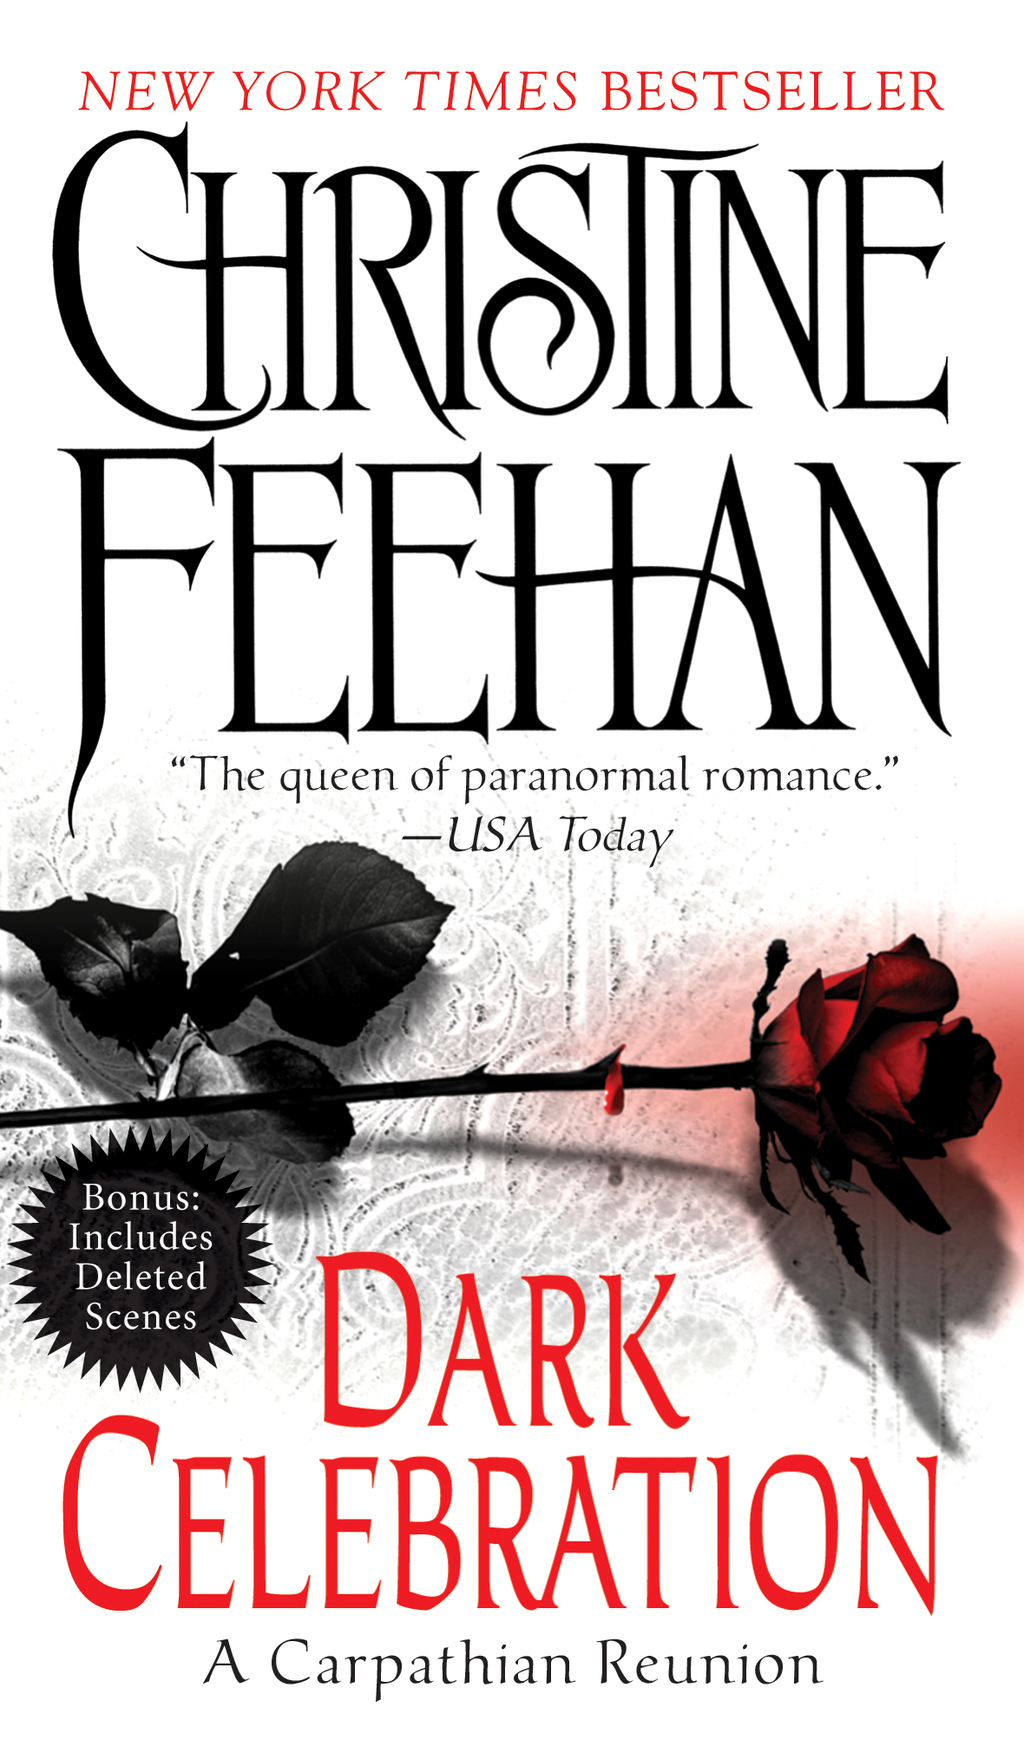 Dark Celebration: A Carpathian Reunion By: Christine Feehan